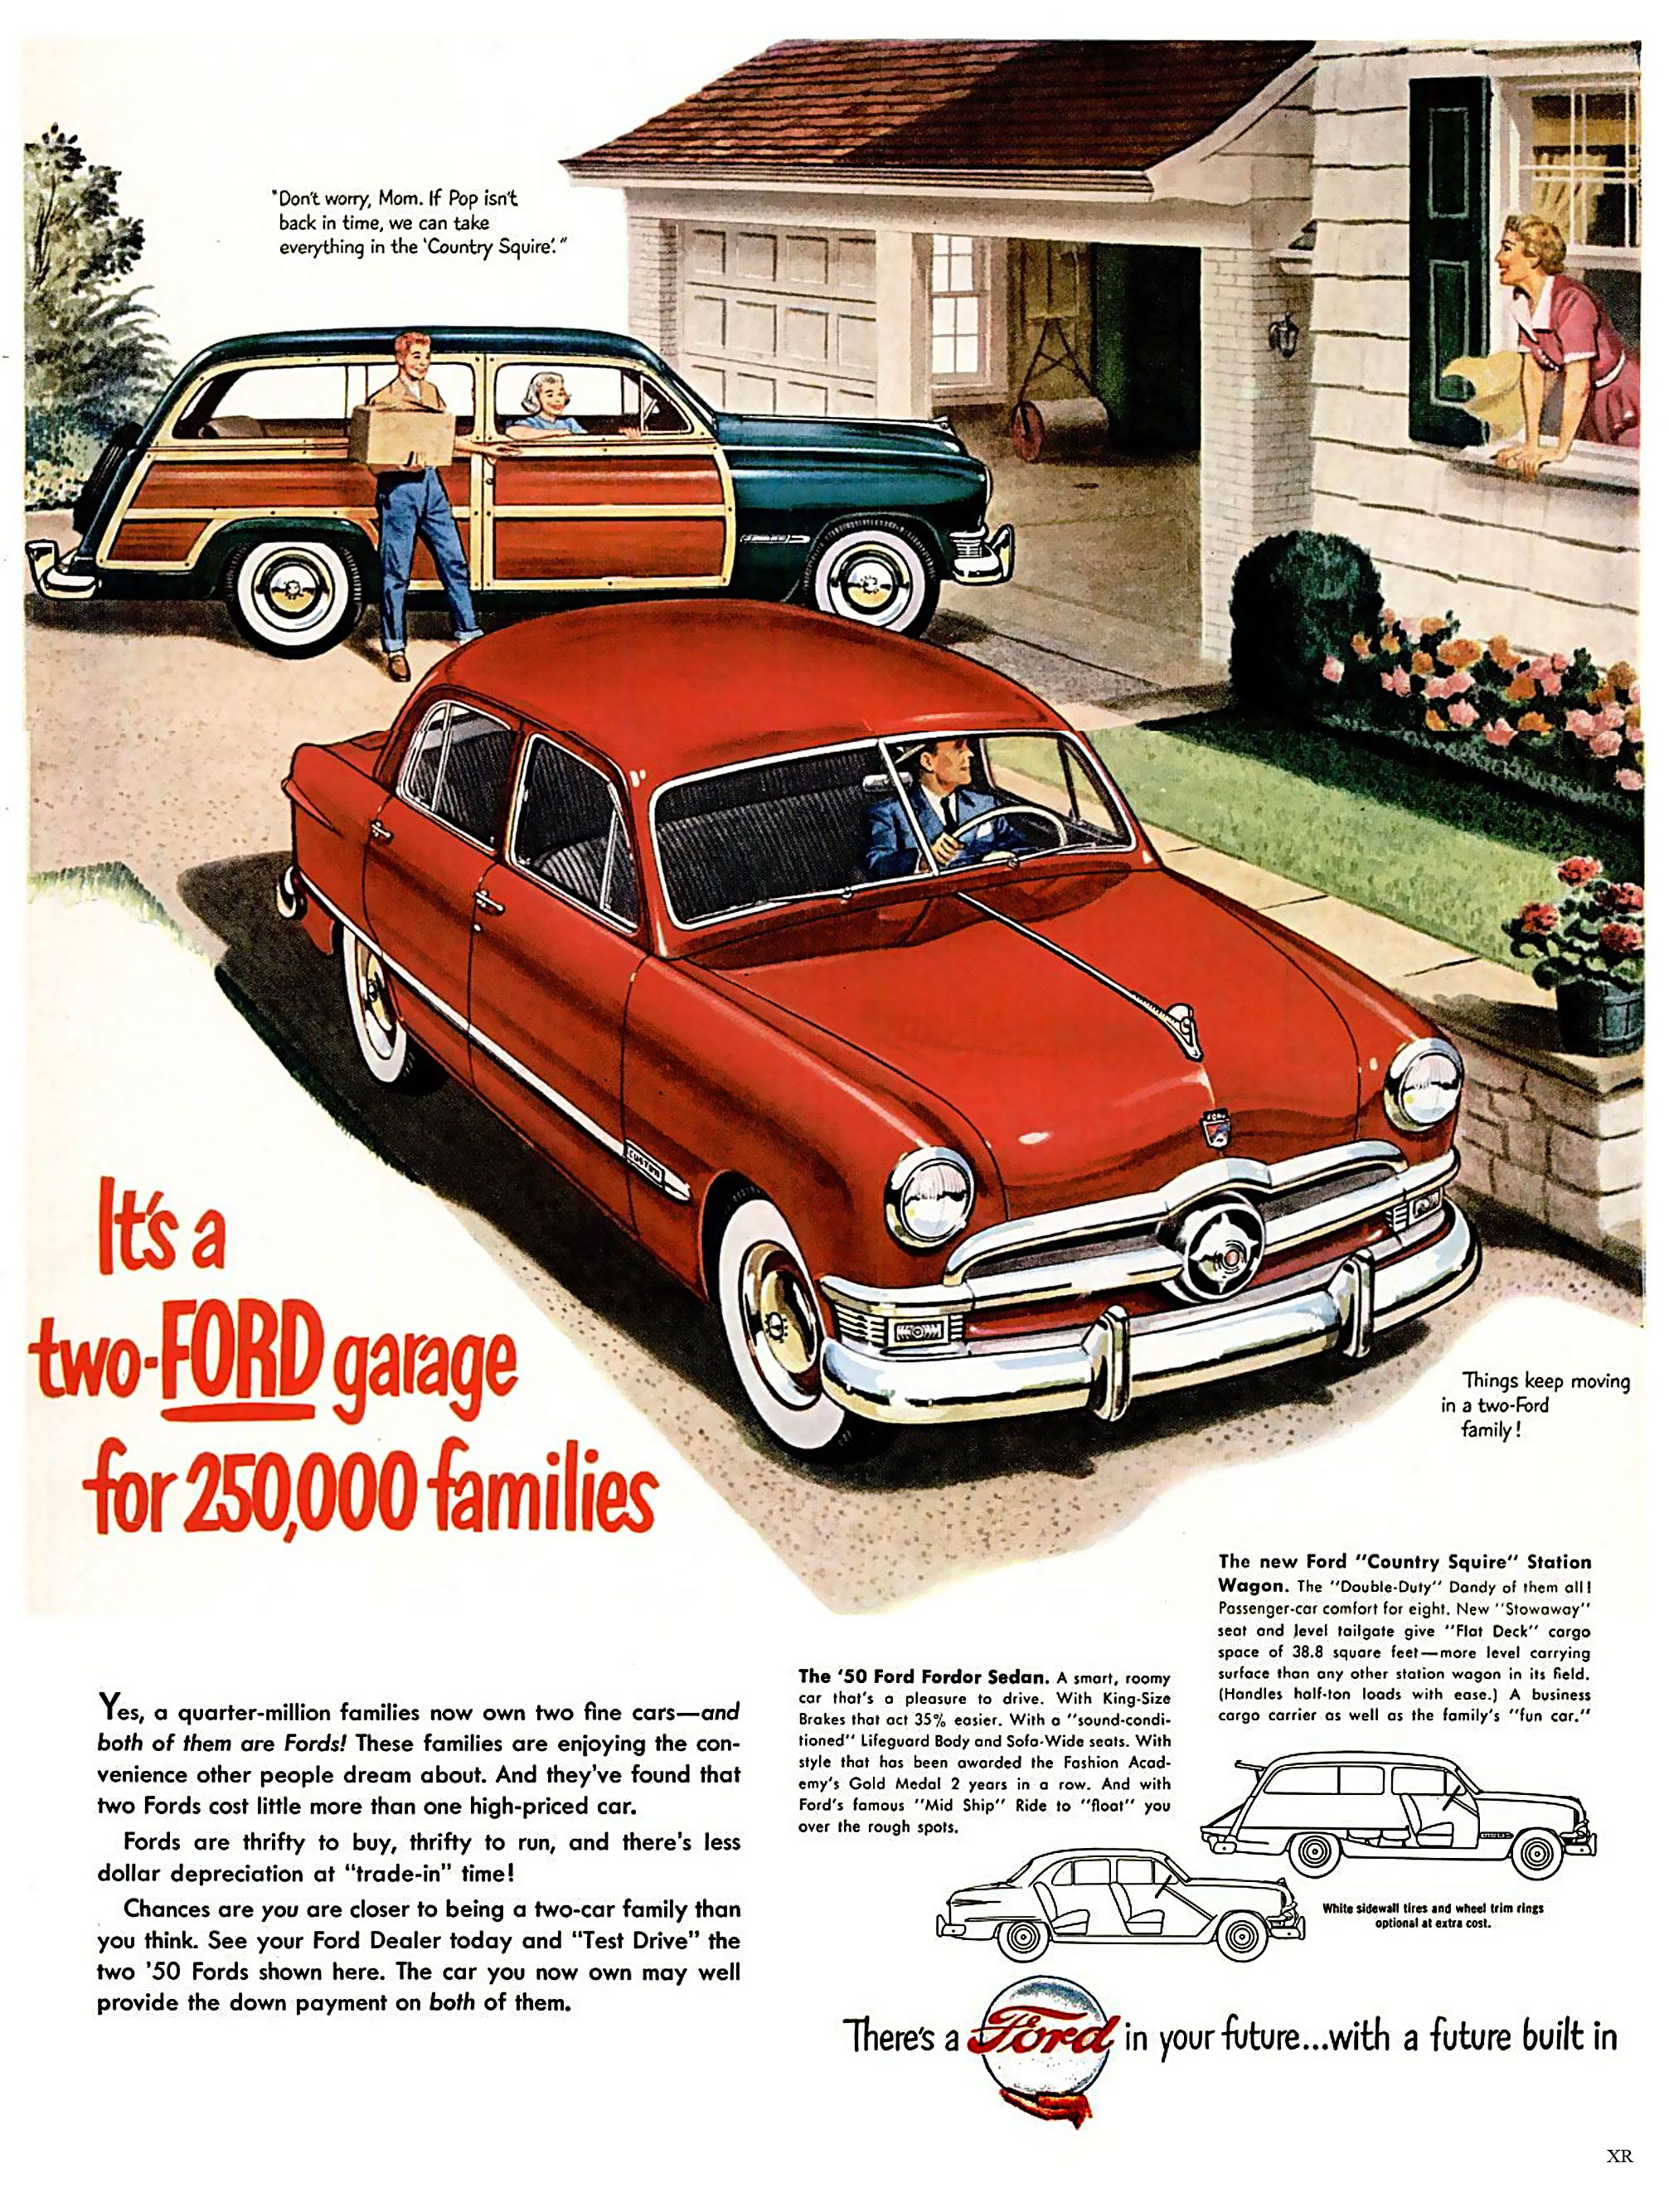 it 39 s a two ford garage shoebox shoebox fords pinterest ford ad car and ford lincoln mercury. Black Bedroom Furniture Sets. Home Design Ideas